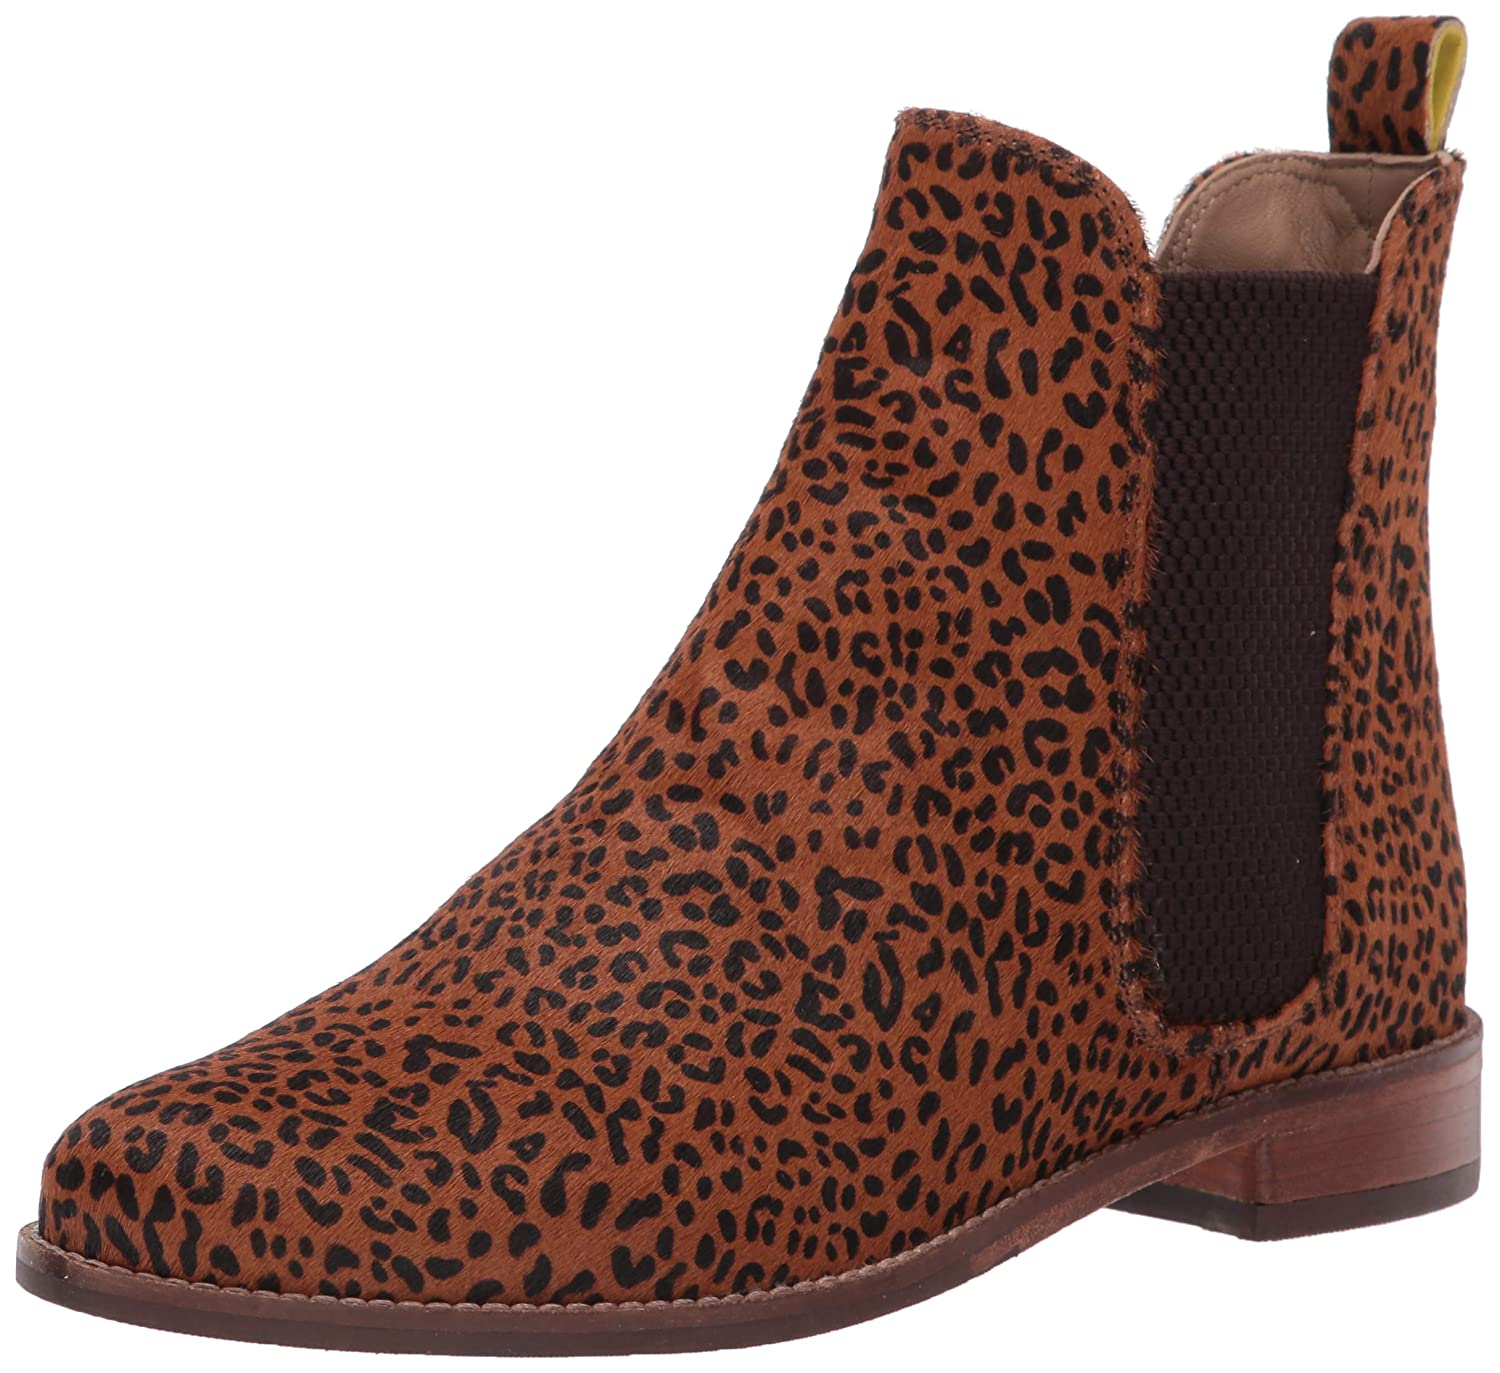 29ca9720ca55c Joules Women's Westbourne Luxe Chelsea Boots: Amazon.co.uk: Shoes & Bags